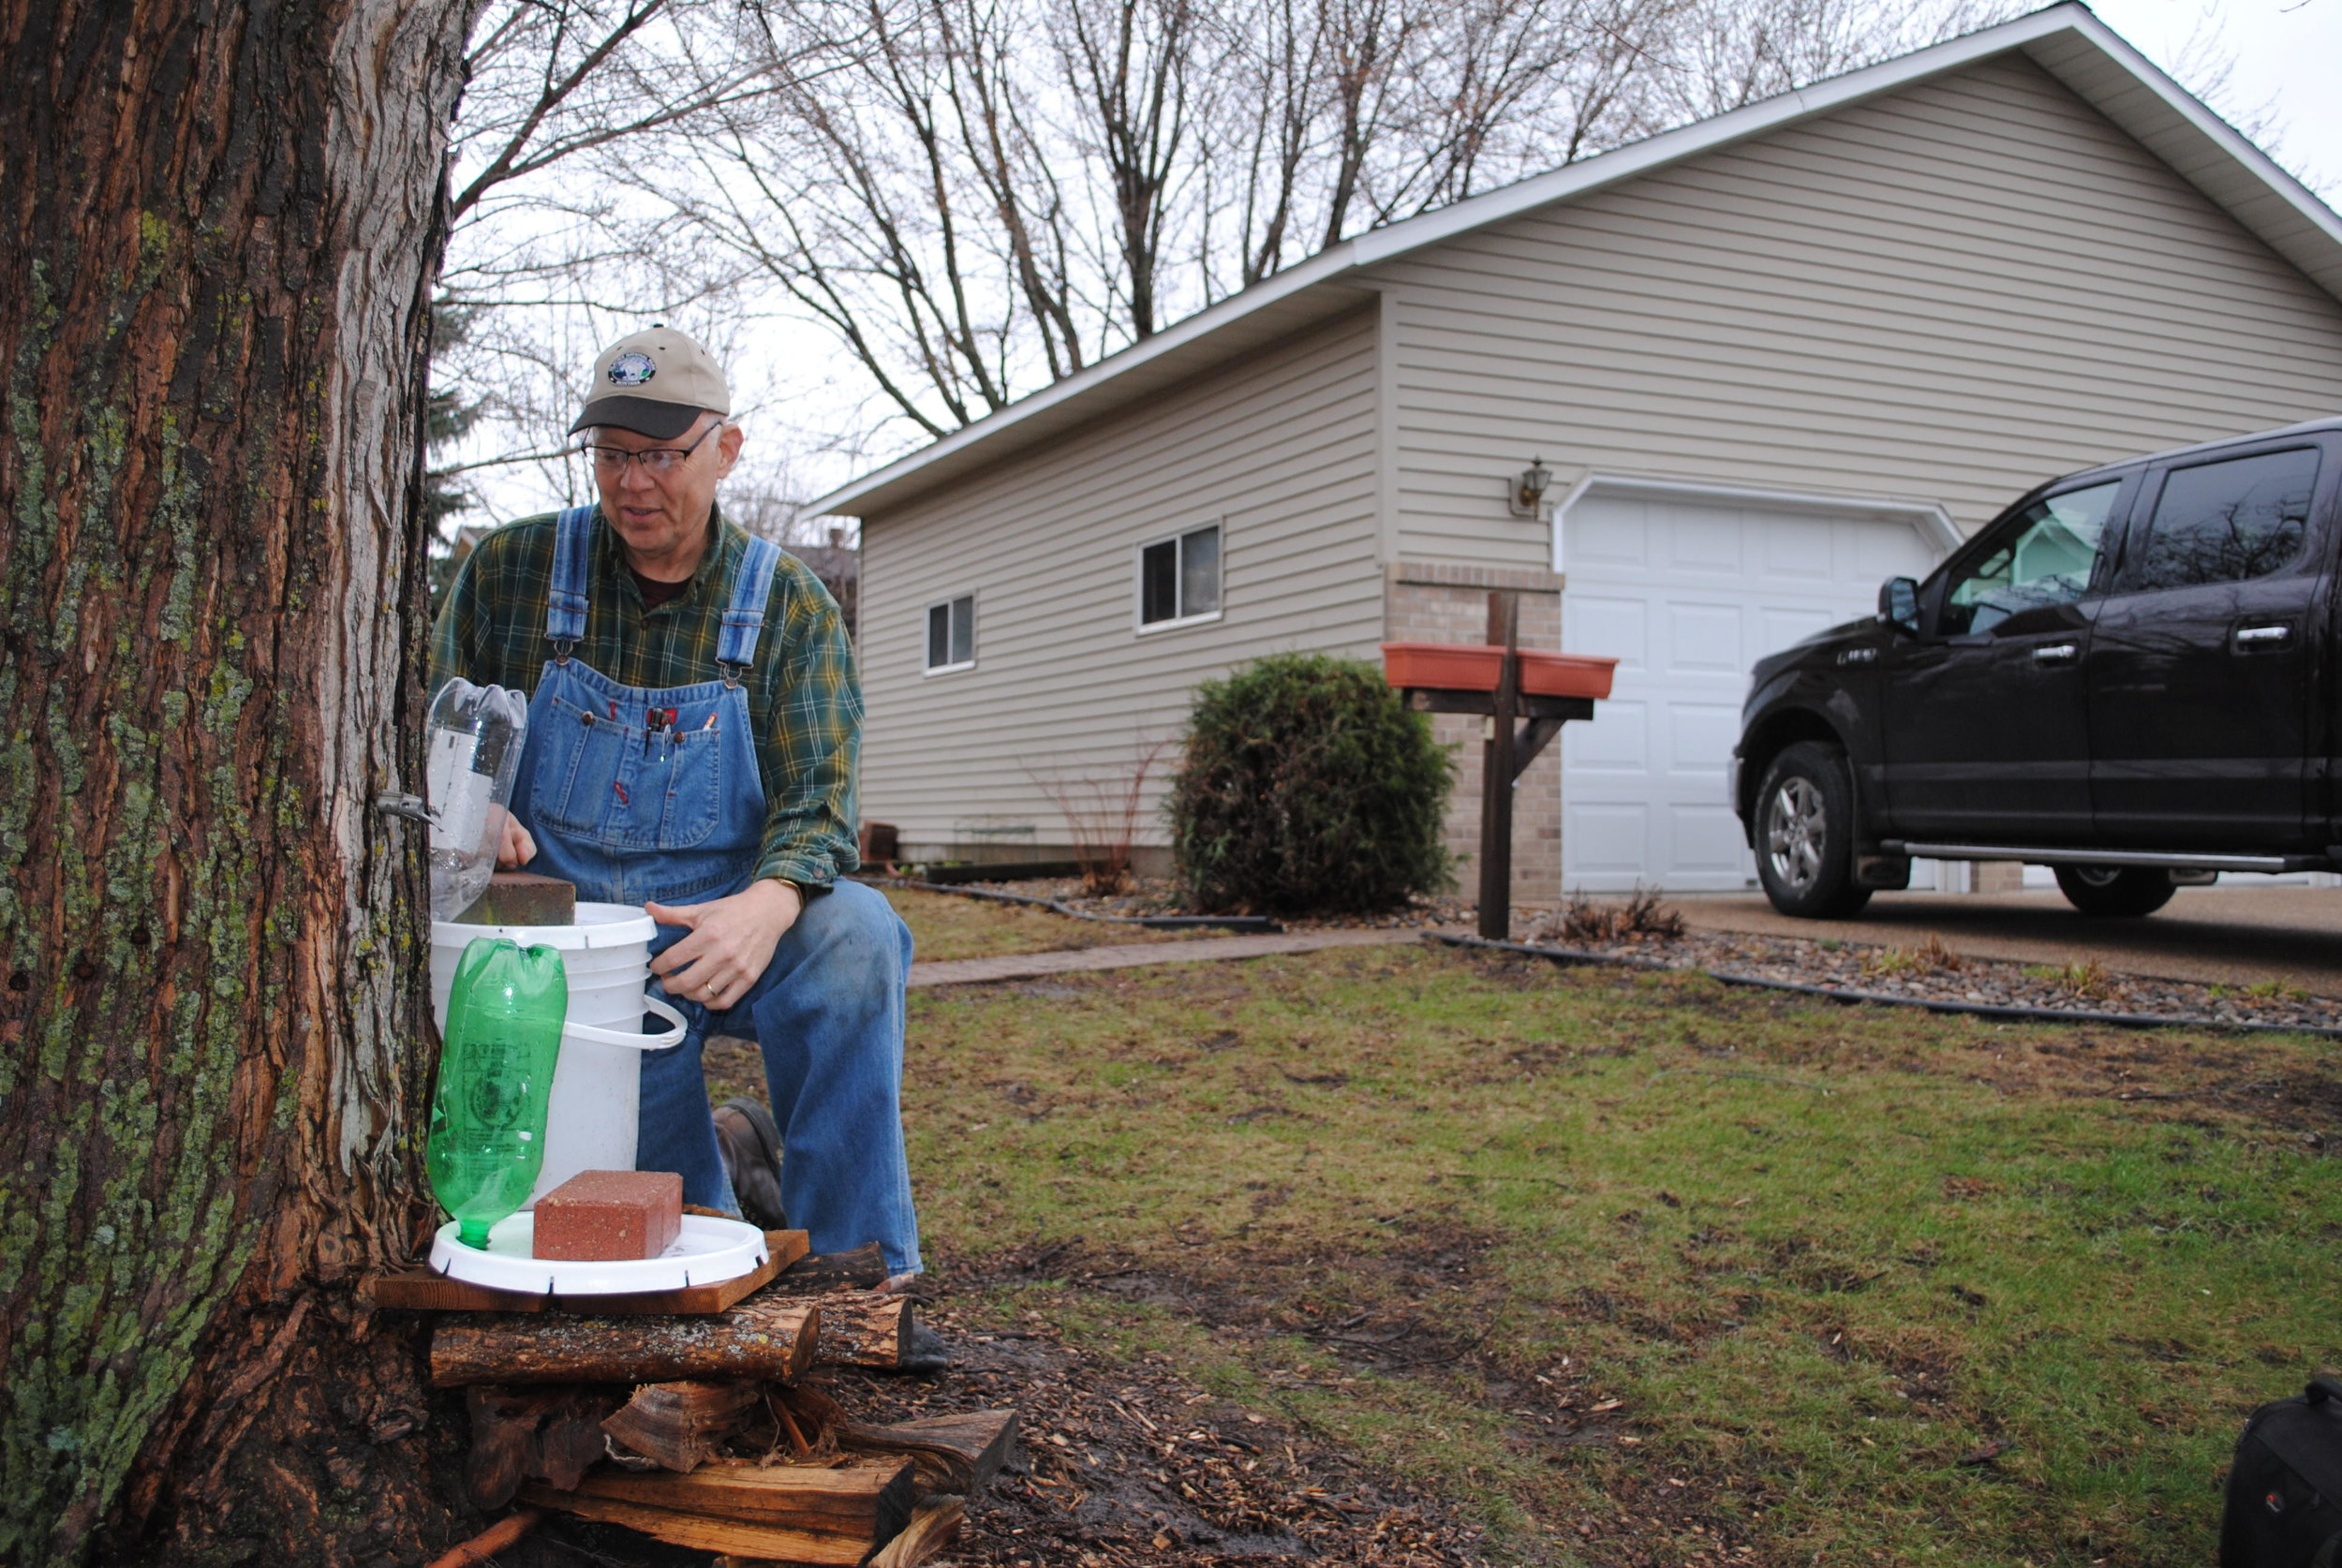 Leslie Bergquist is among a growing number of Minnesotans who have discovered the hobby of producing maple syrup can be enjoyed in an urban setting. He's shown checking a tree tapped at his home in a residential area on the east side of Granite Falls. Tom Cherveny / Foum News Service